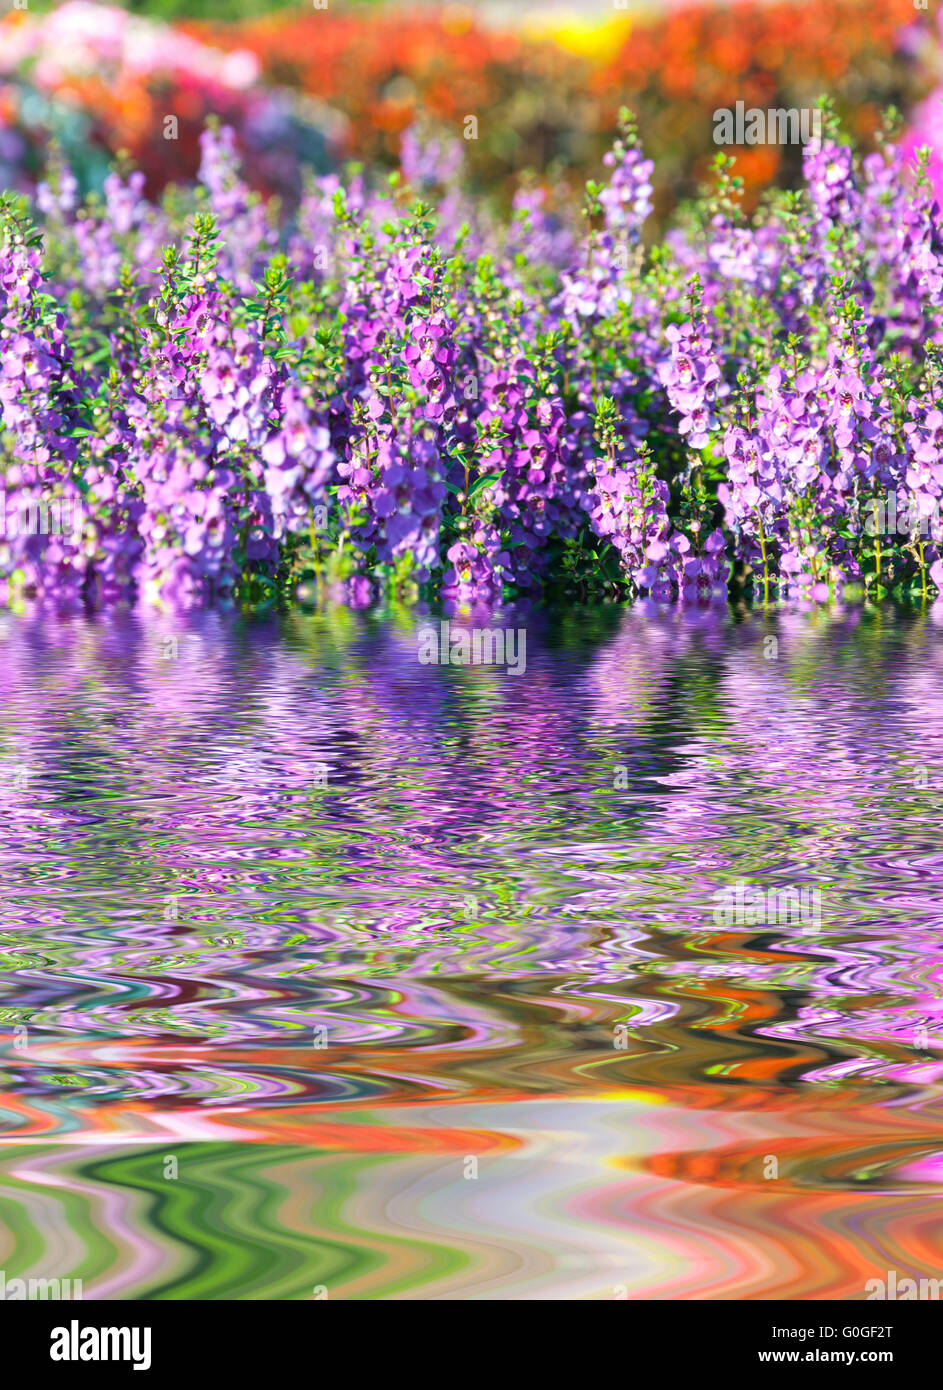 Water Ripple and reflections of Flora on water - Stock Image